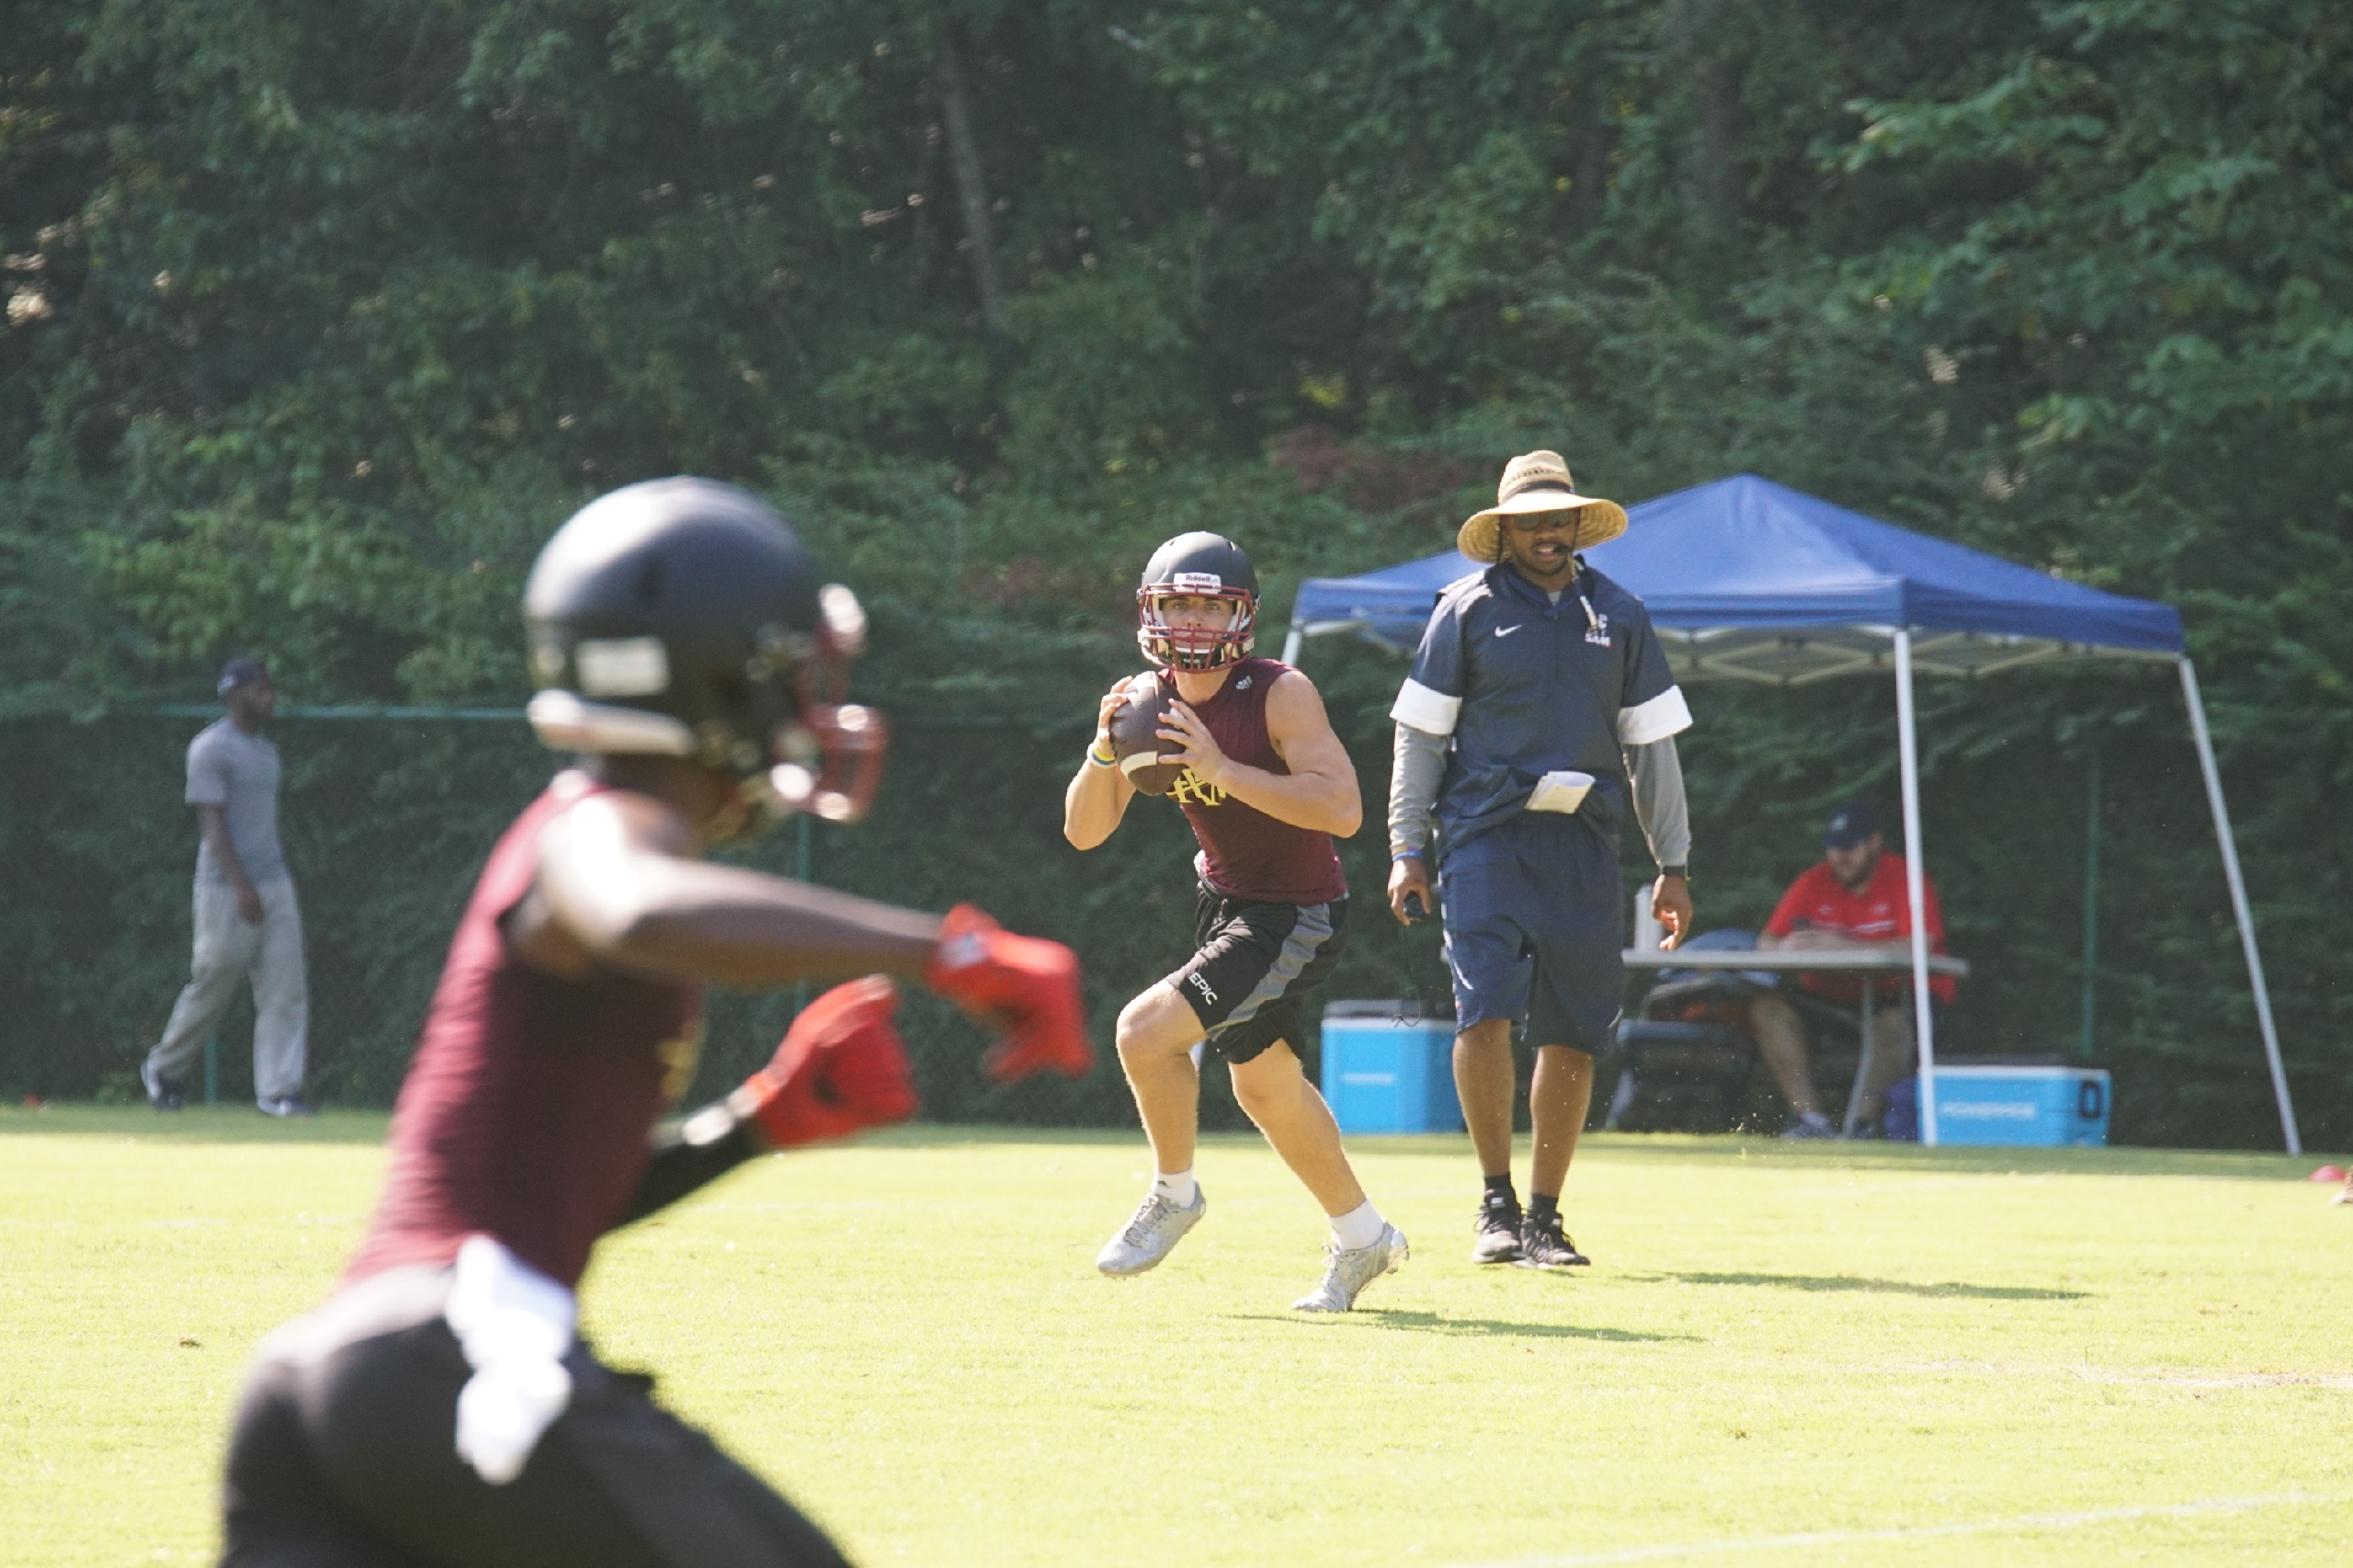 Huskies To Compete In Usa Football National 7on7 Tournament The